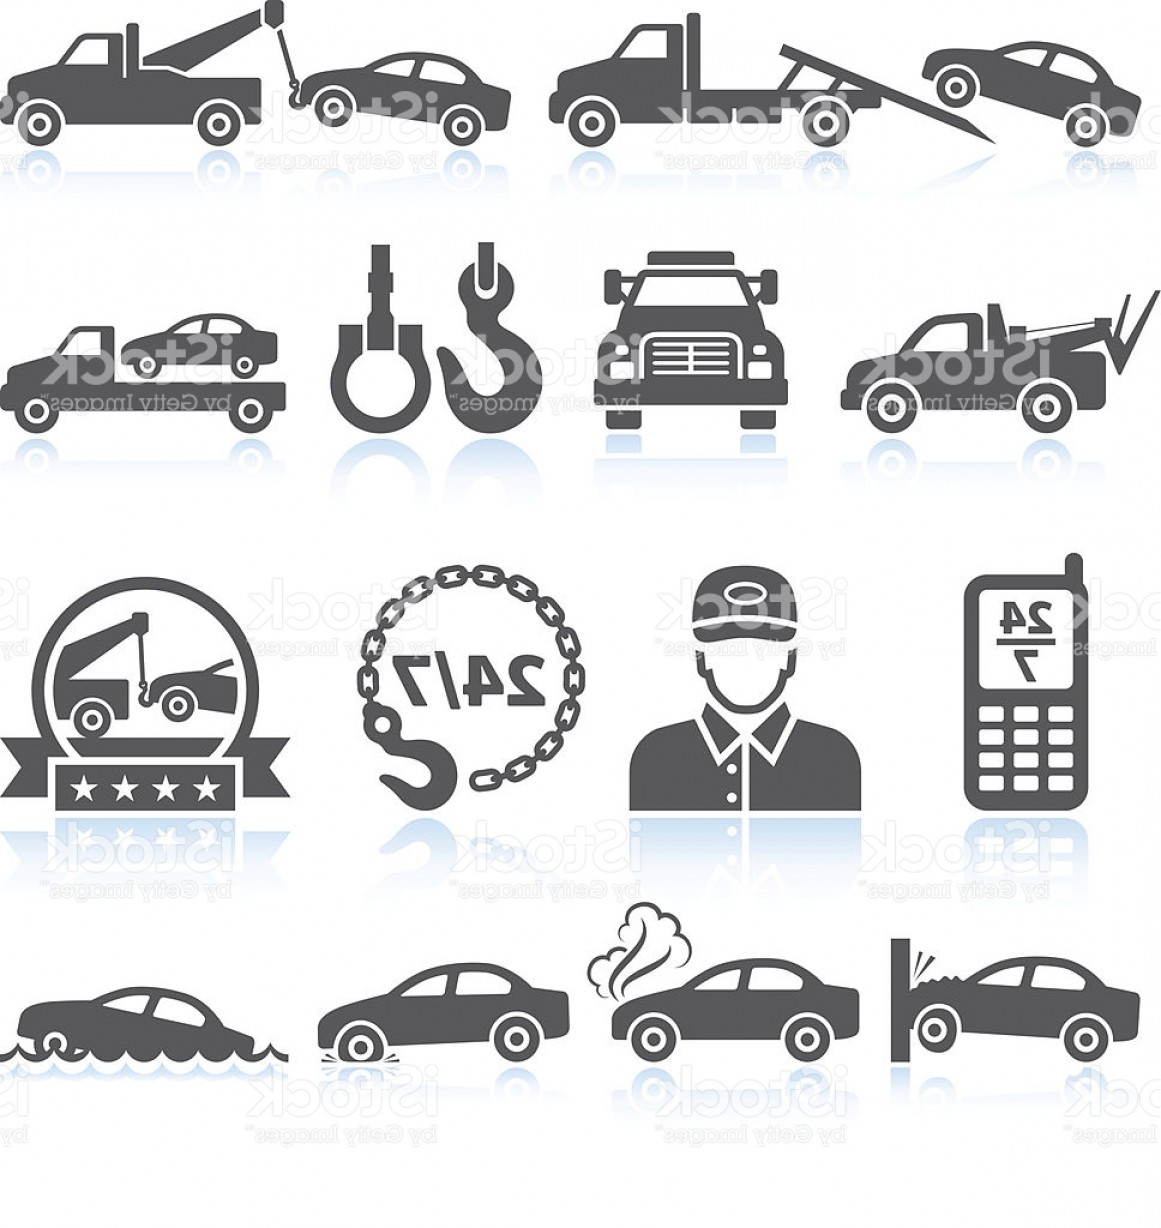 1161x1228 Towing Truck Black White Royalty Free Vector Icon Set Gm Sohadacouri